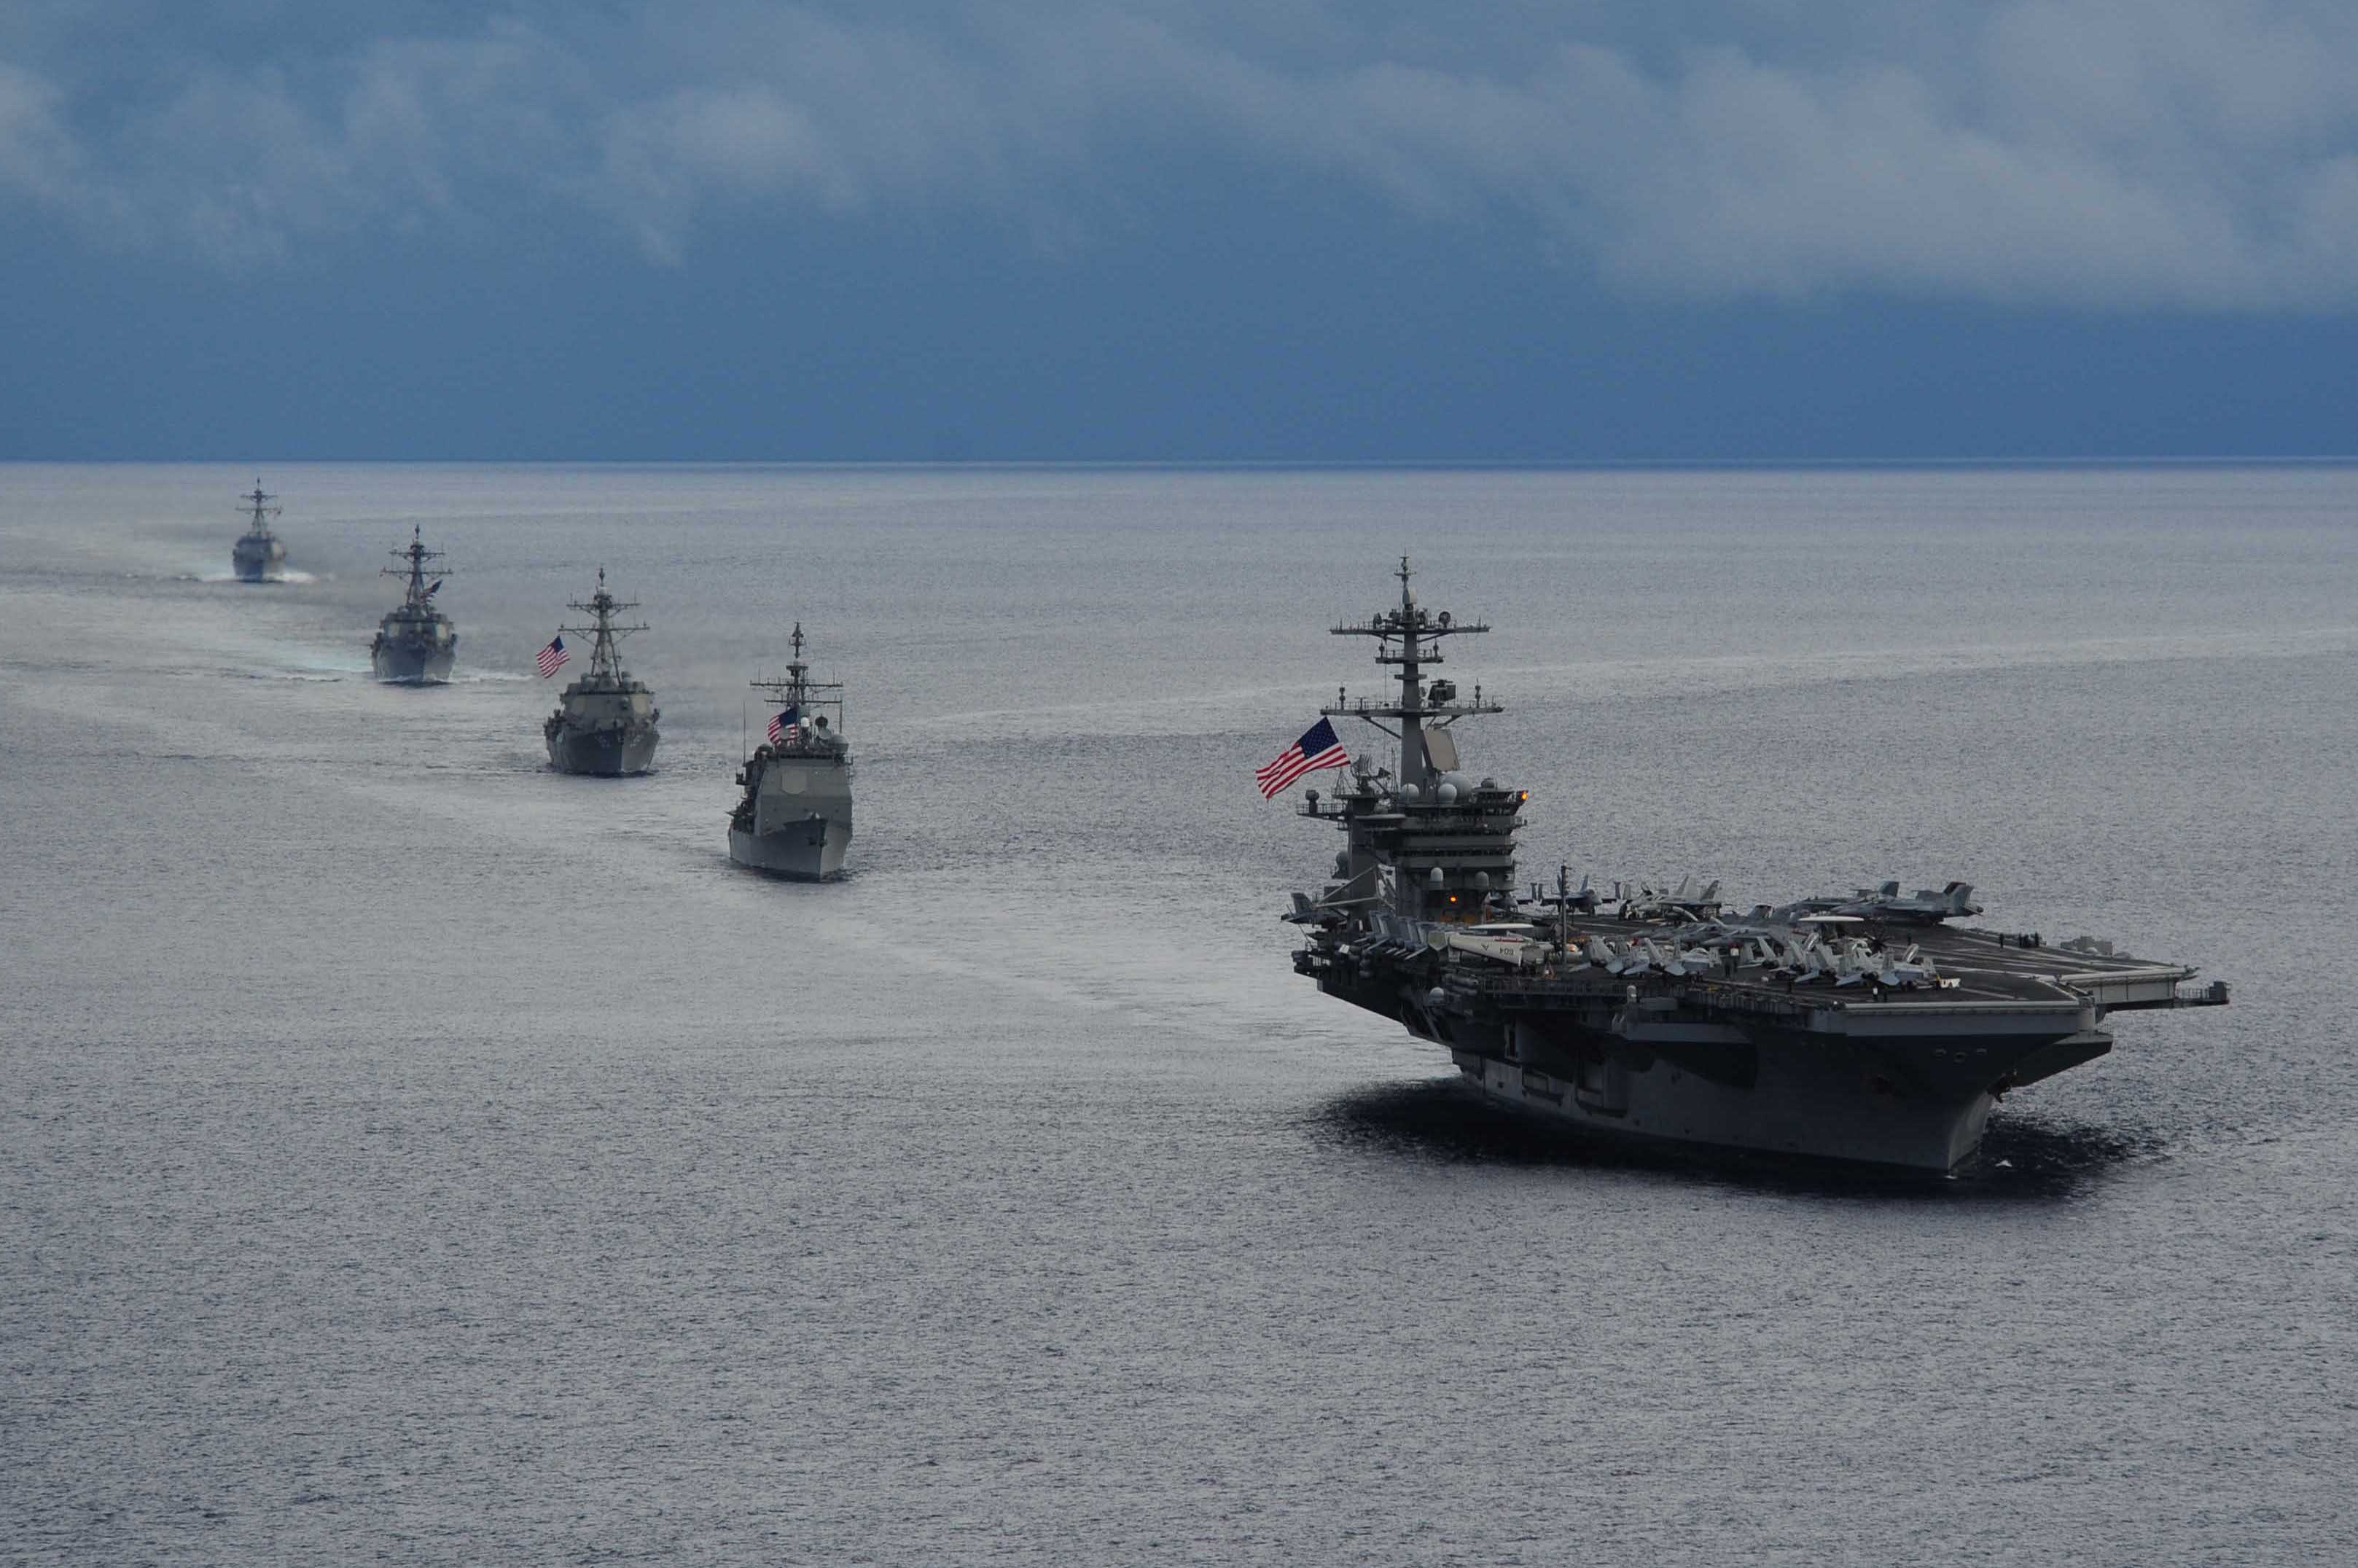 essay the new strategic realities of u s carrier operations uss theodore roosevelt cvn 71 leads a formation of ships from carrier strike group